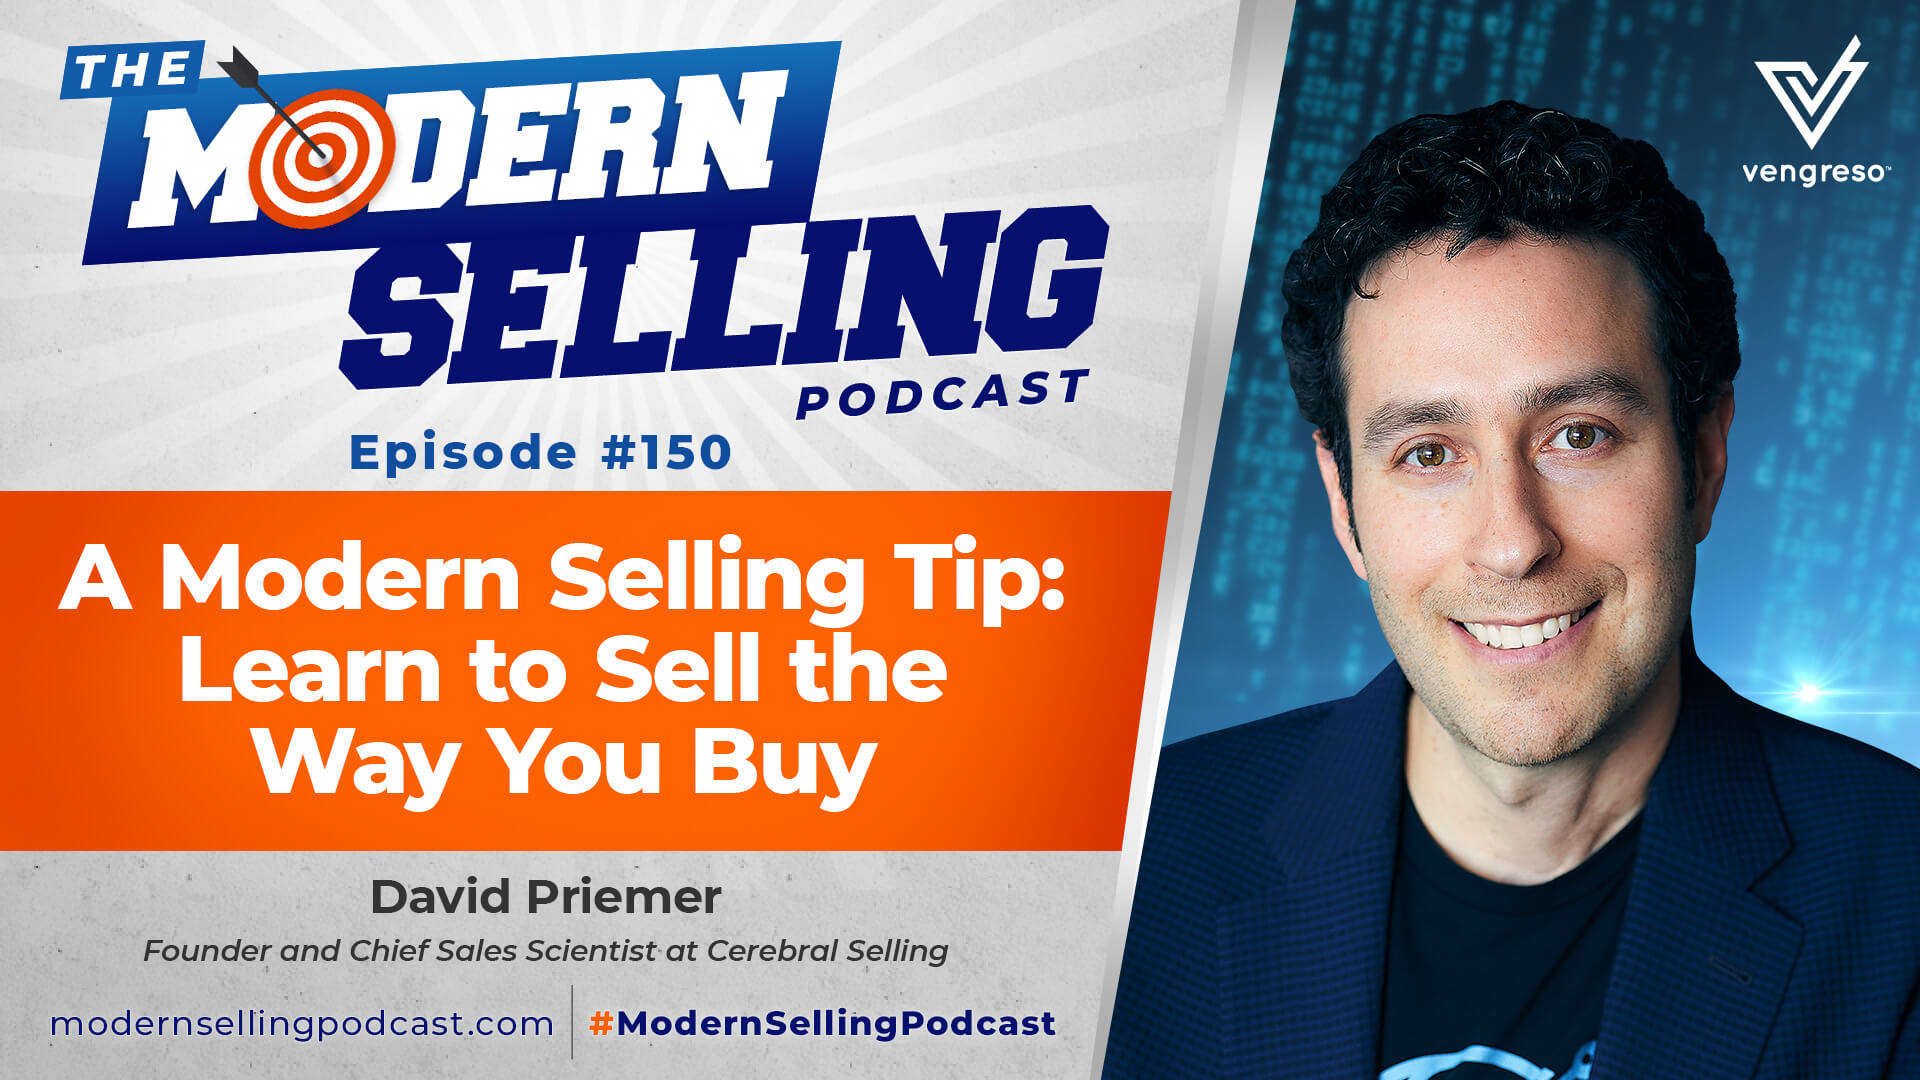 Modern Selling Tip: Sell the way you buy. David Premier